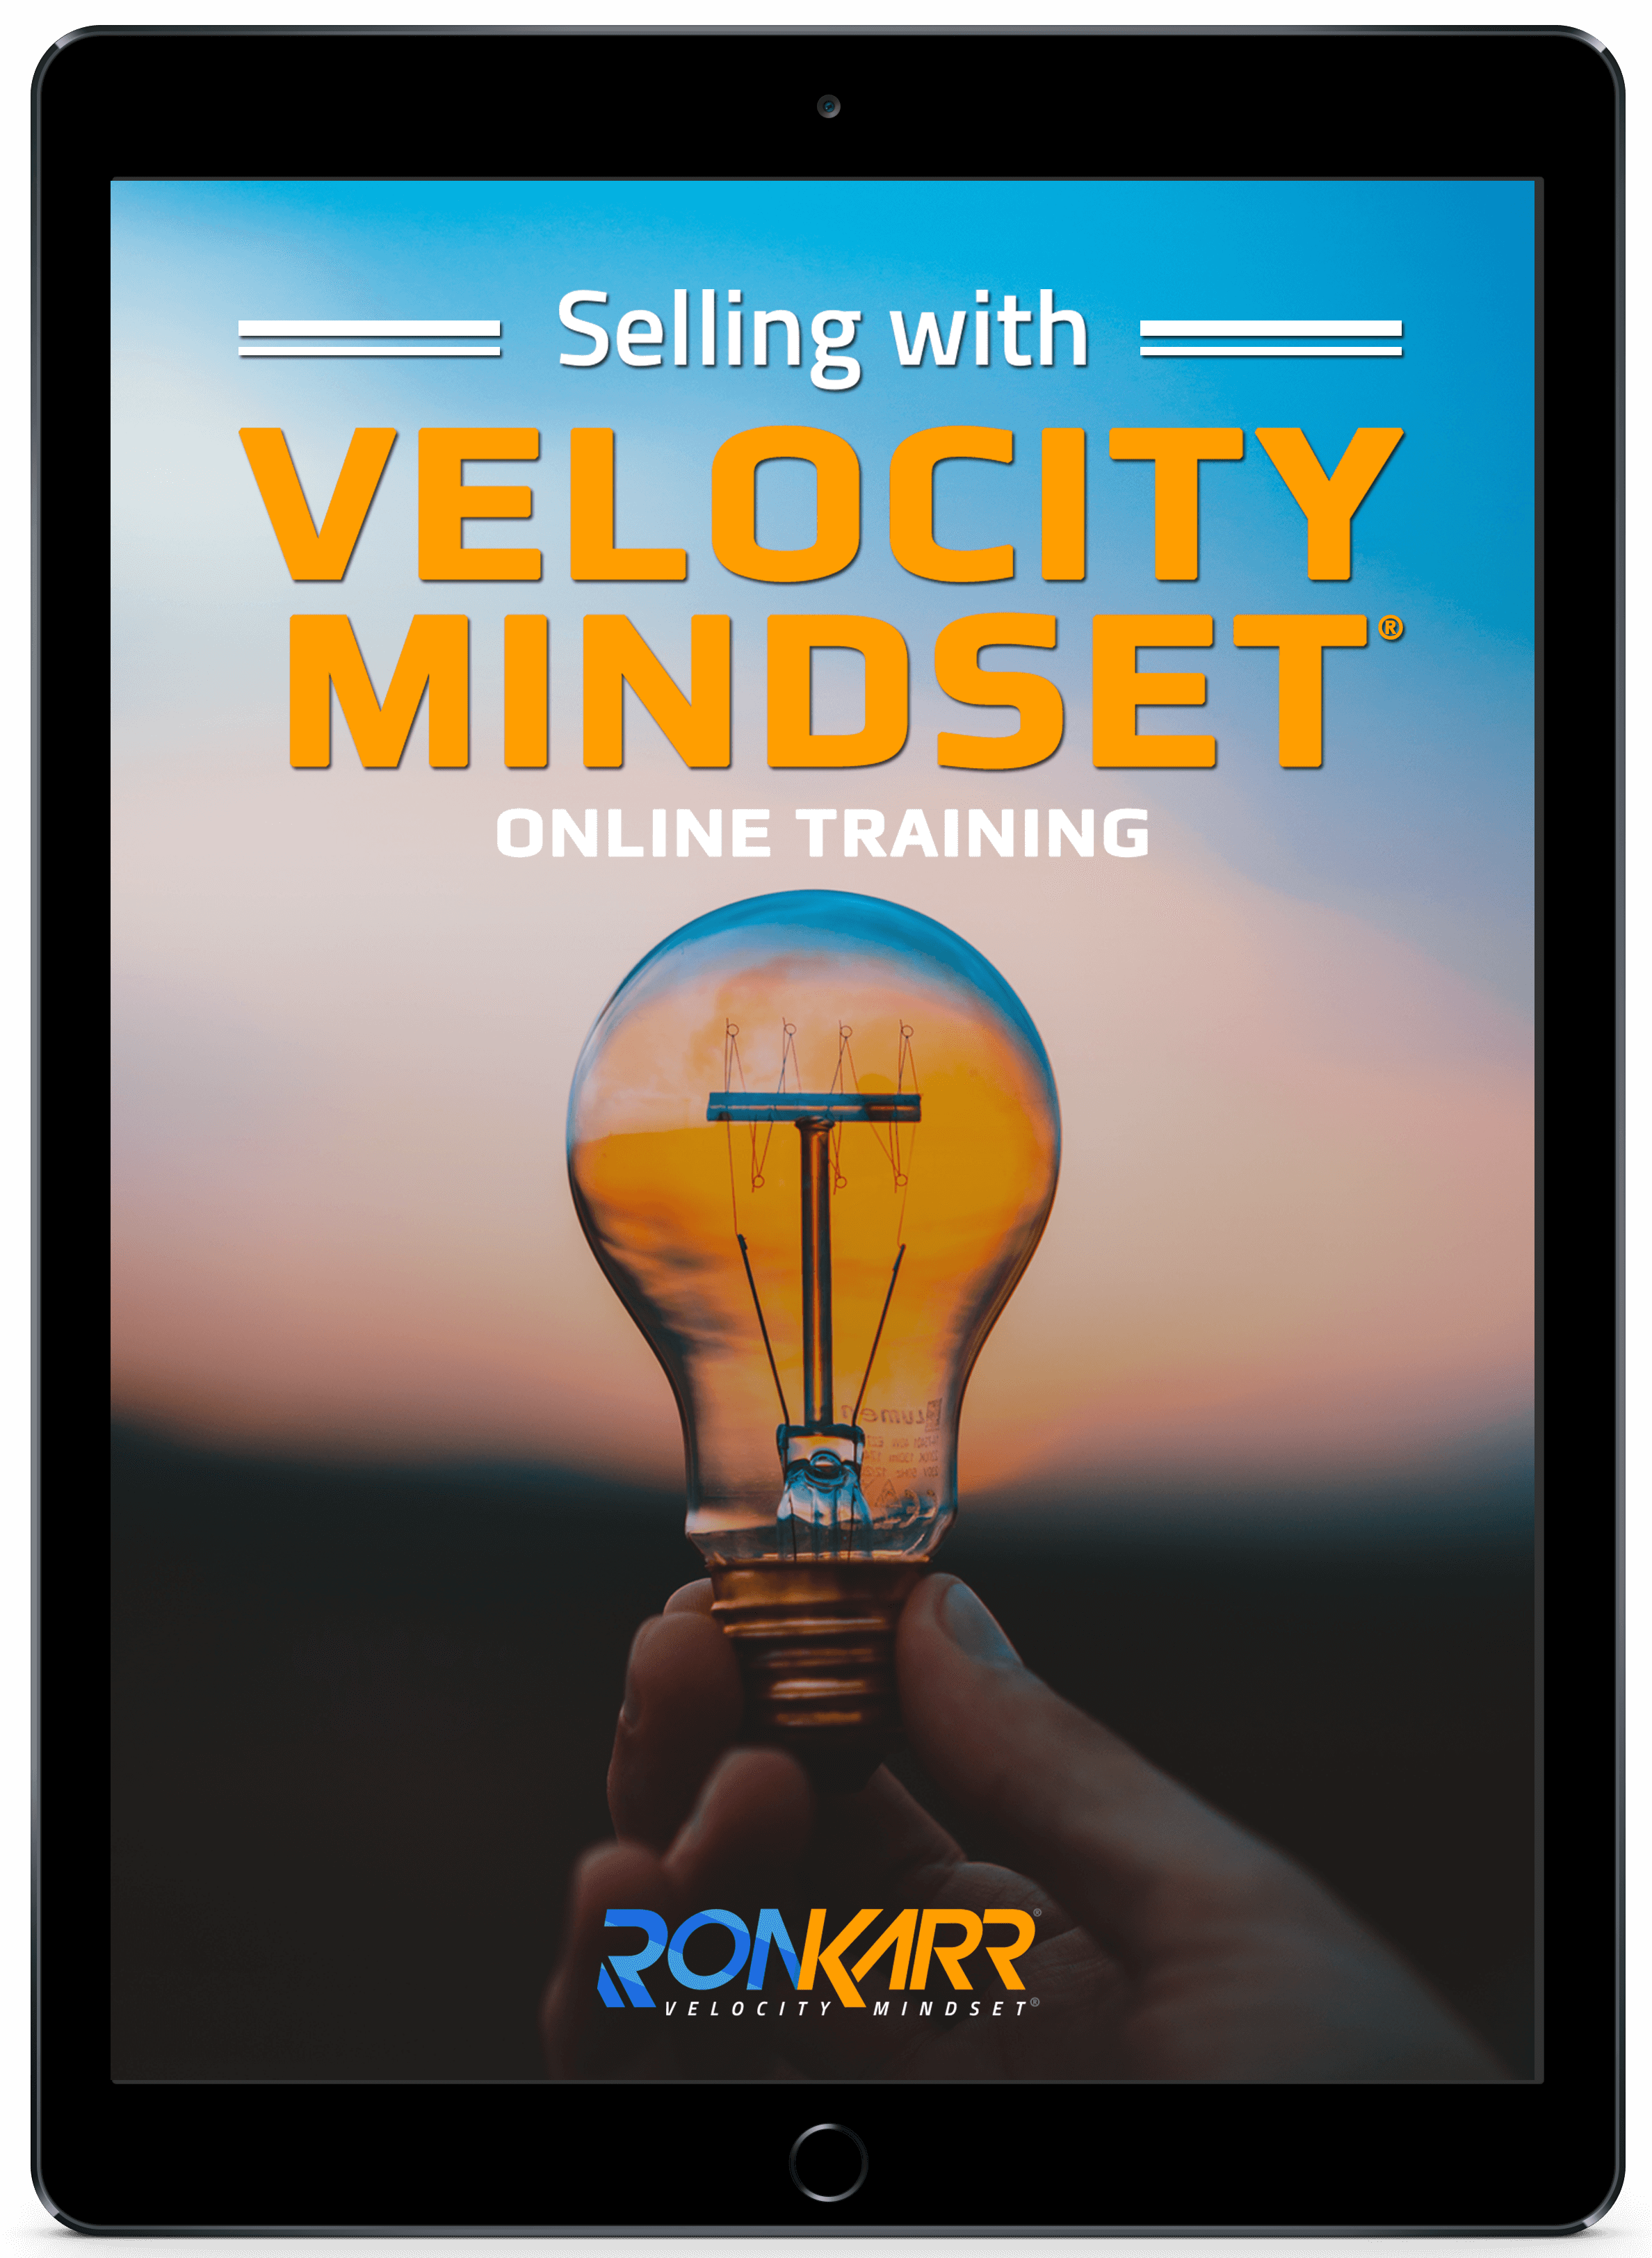 Selling-with-Velocity-Mindset-